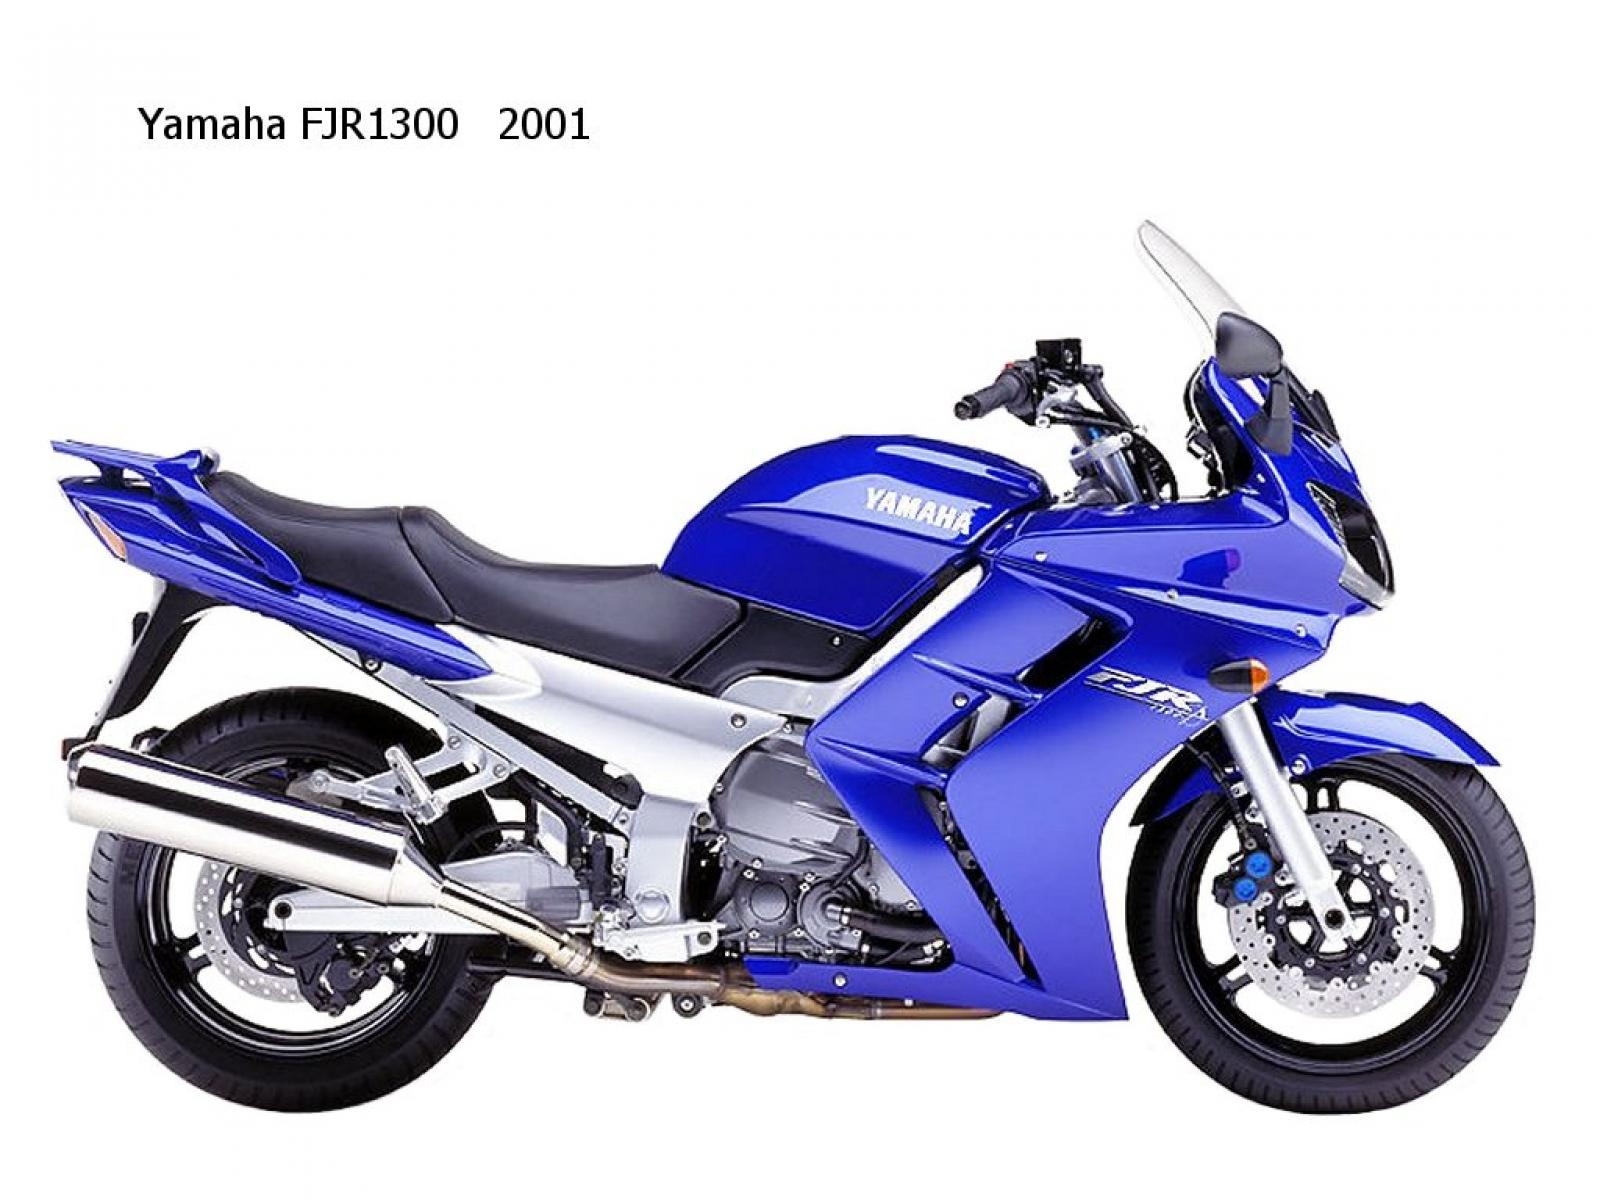 2001 yamaha fjr 1300 moto zombdrive com. Black Bedroom Furniture Sets. Home Design Ideas